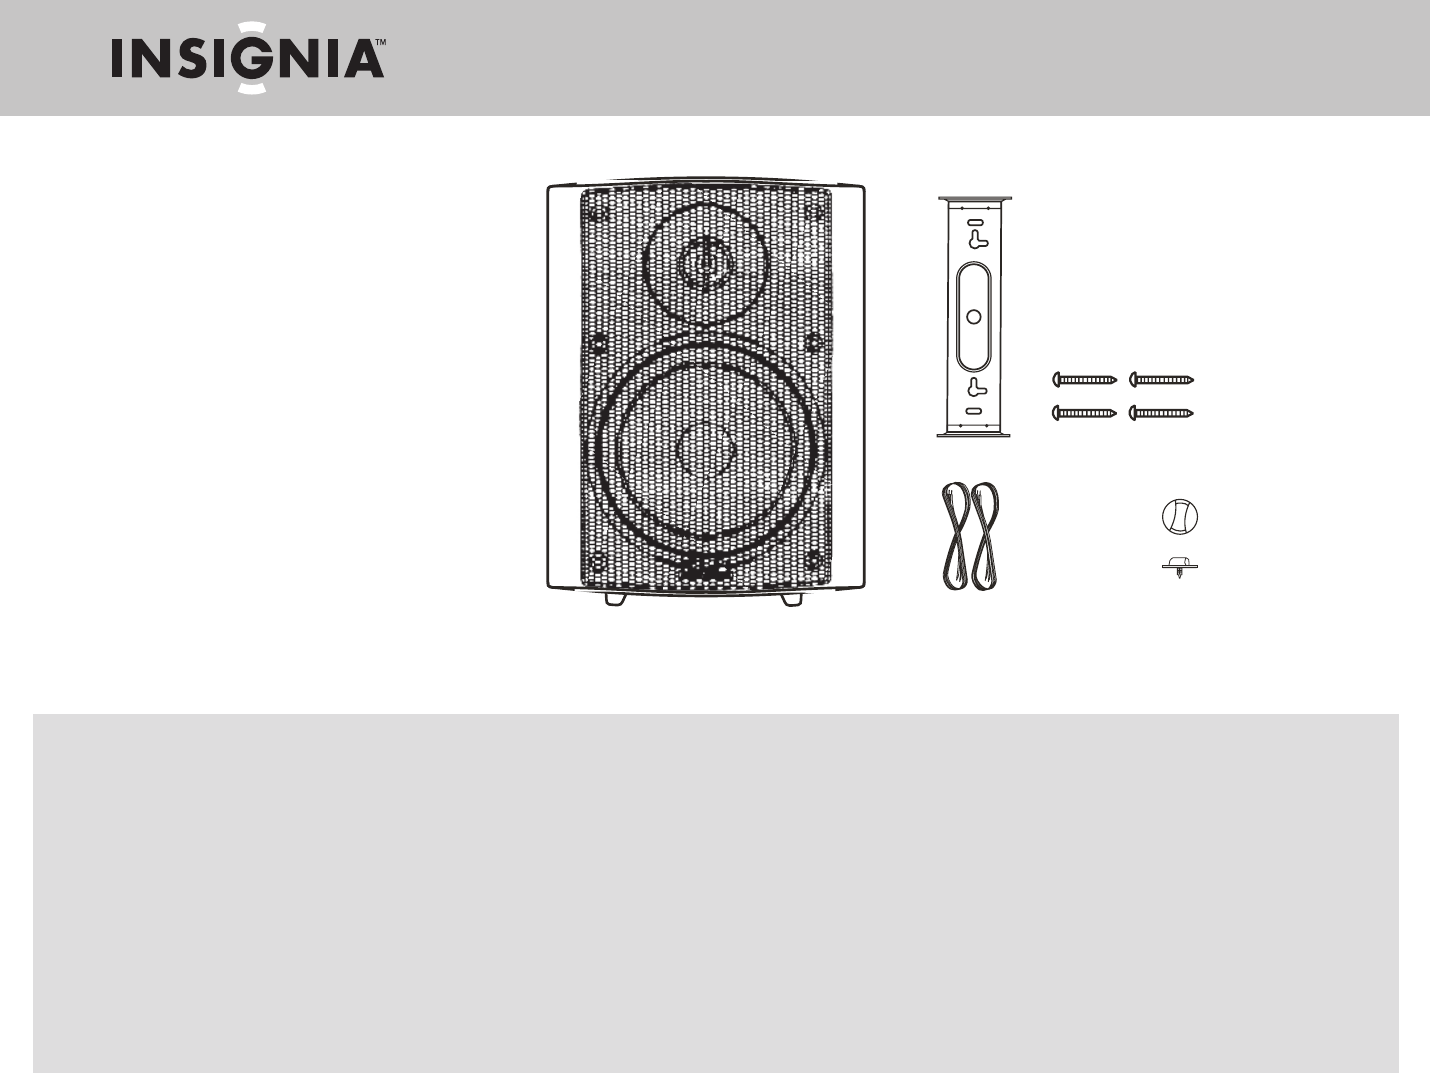 Insignia Portable Speaker NS-E2111 User Guide